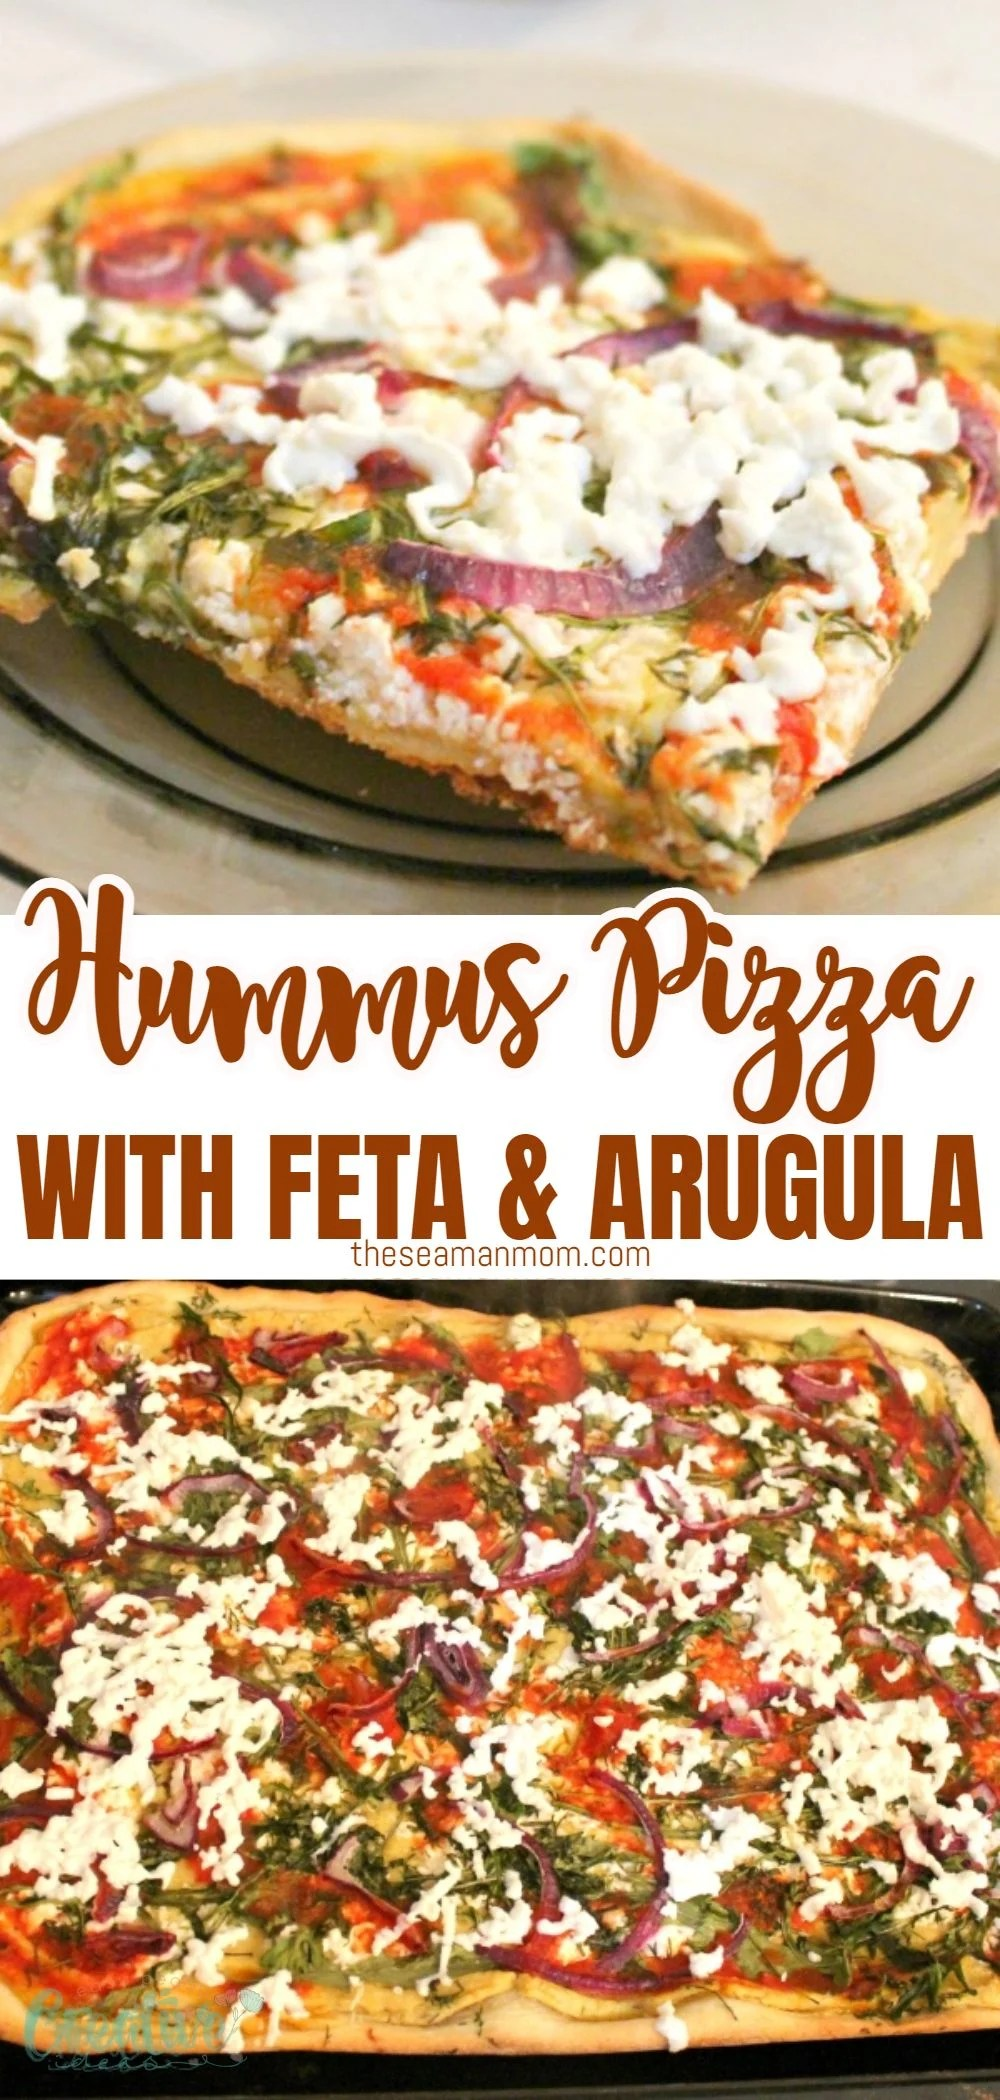 Looking for a vegetarian pizza recipe that easy to make at home? This delicious hummus pizza uses healthy, delicious ingredients and comes together in no time! via @petroneagu